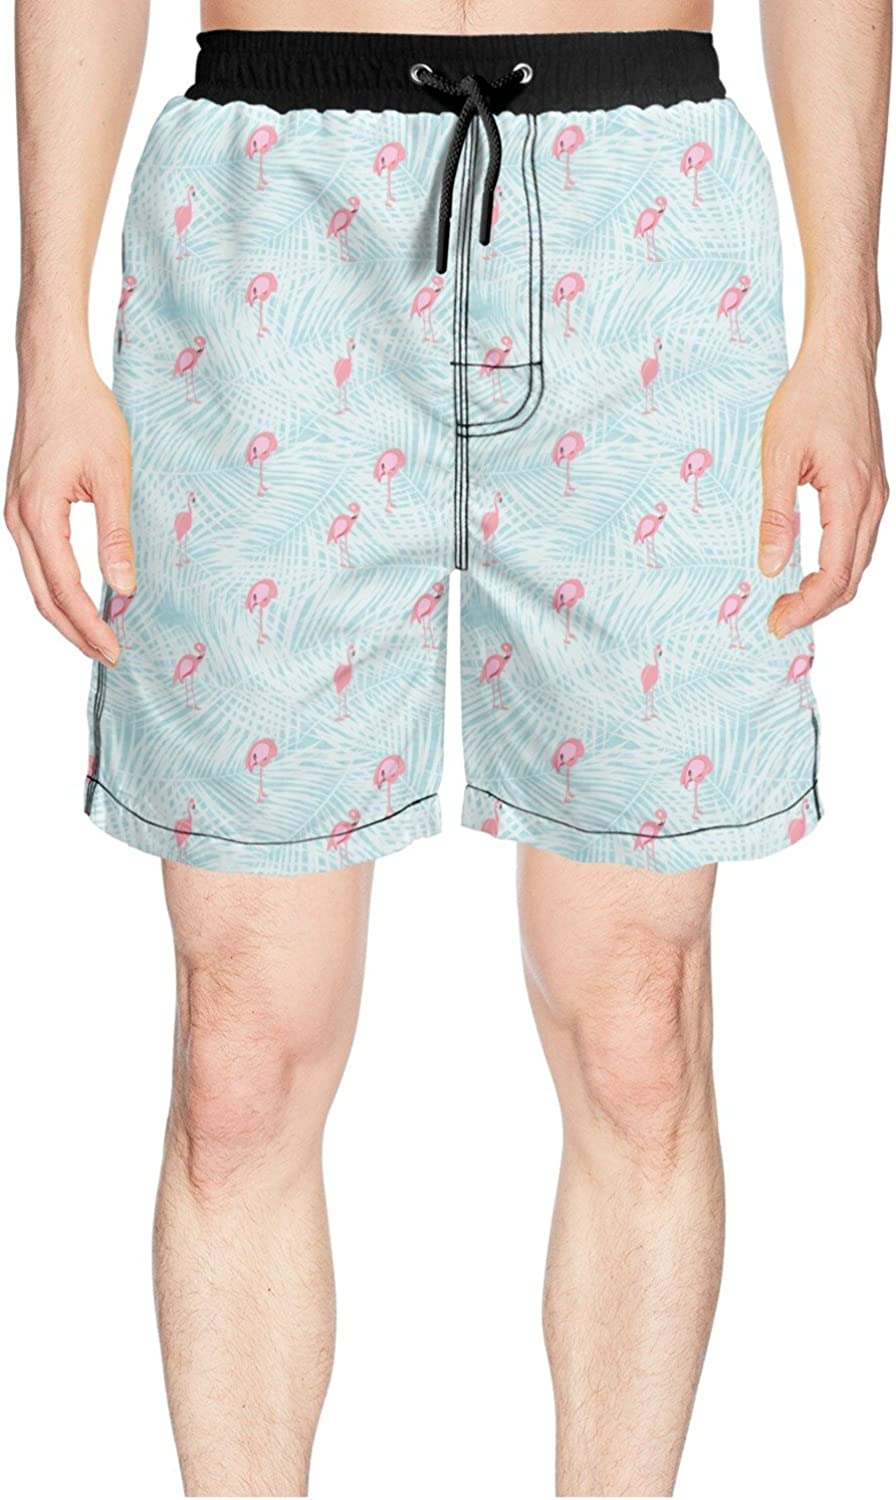 23a4fe9454 Juliuse Marthar Men's Pink Pink Pink Flamingo with Tropical Jungle Swim  Trunks Quick Dry Shorts Board Shorts ebd49f